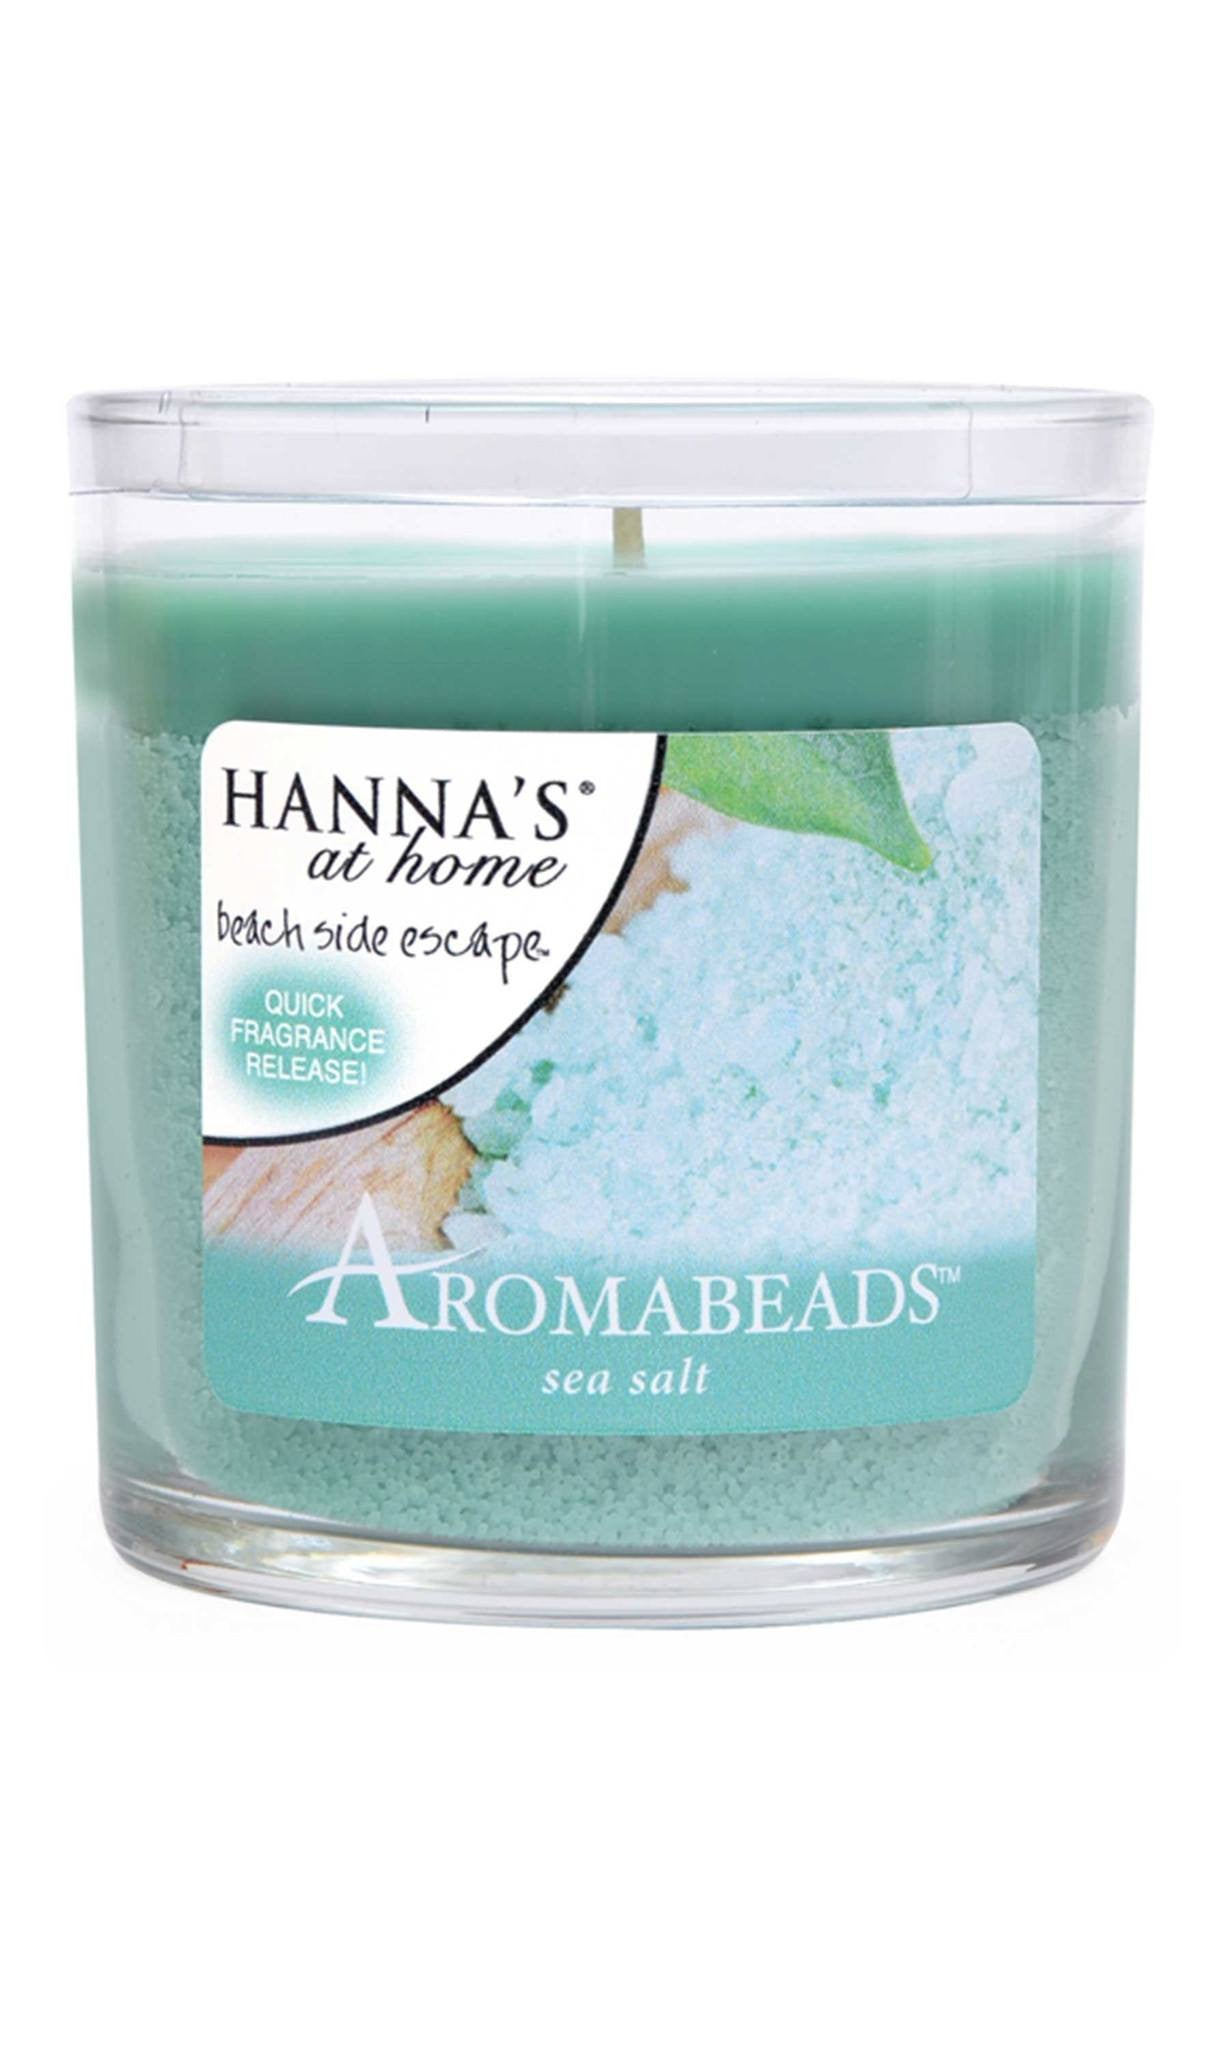 Aromabeads Sea Salt Scented Tumbler Candle - Candlemart.com